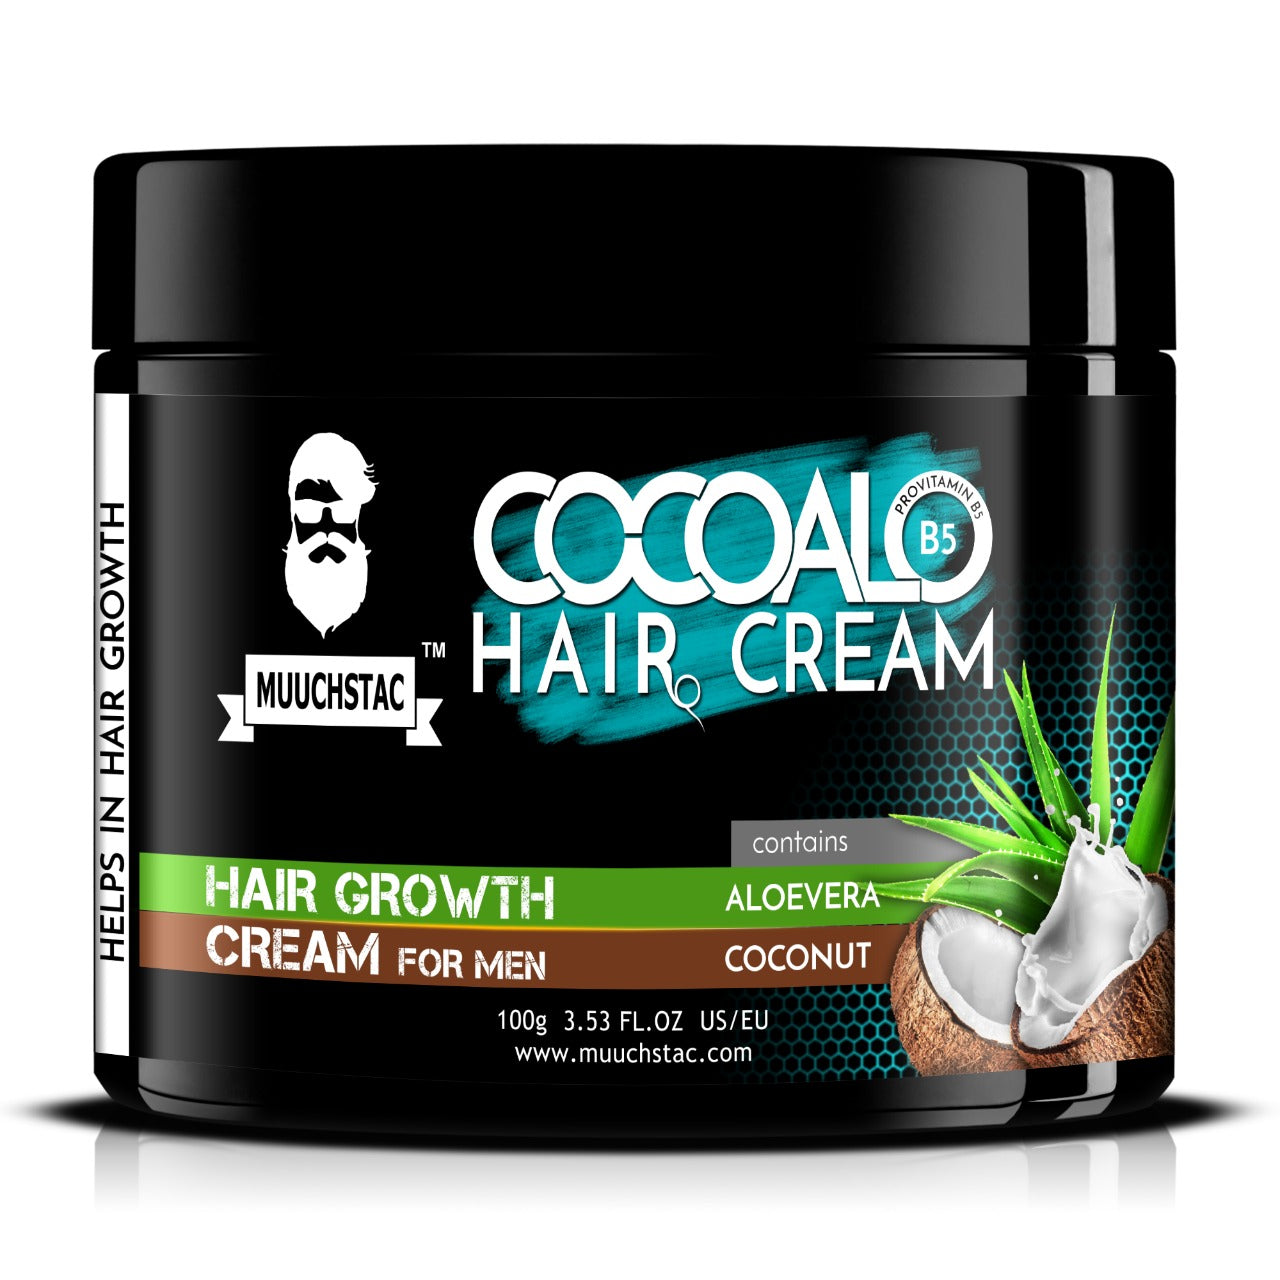 Muuchstac Cocoalo Hair Cream 100 g